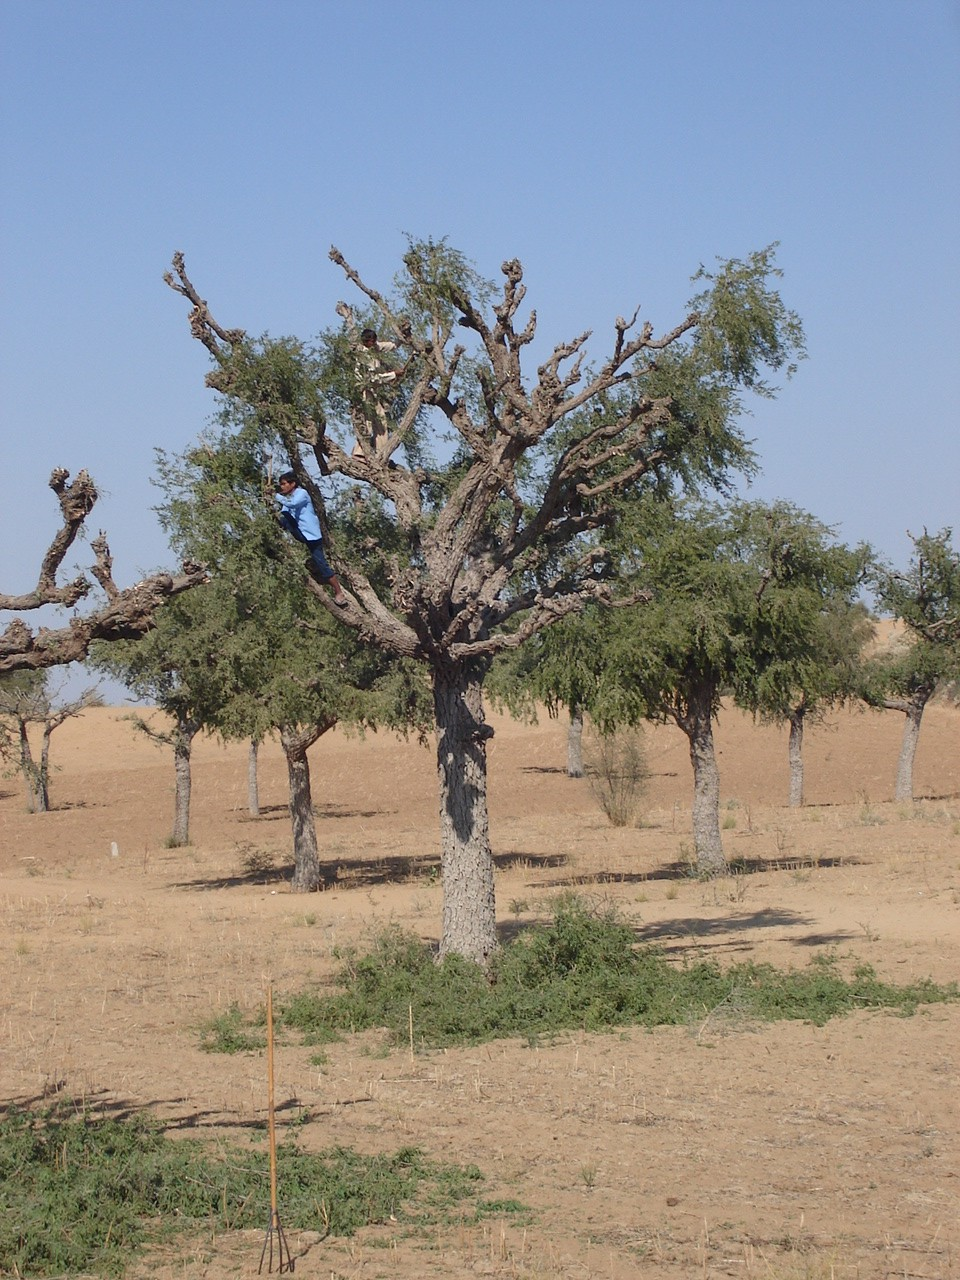 Lopping of Khejri tree for fodder and fuel in Harsawa village